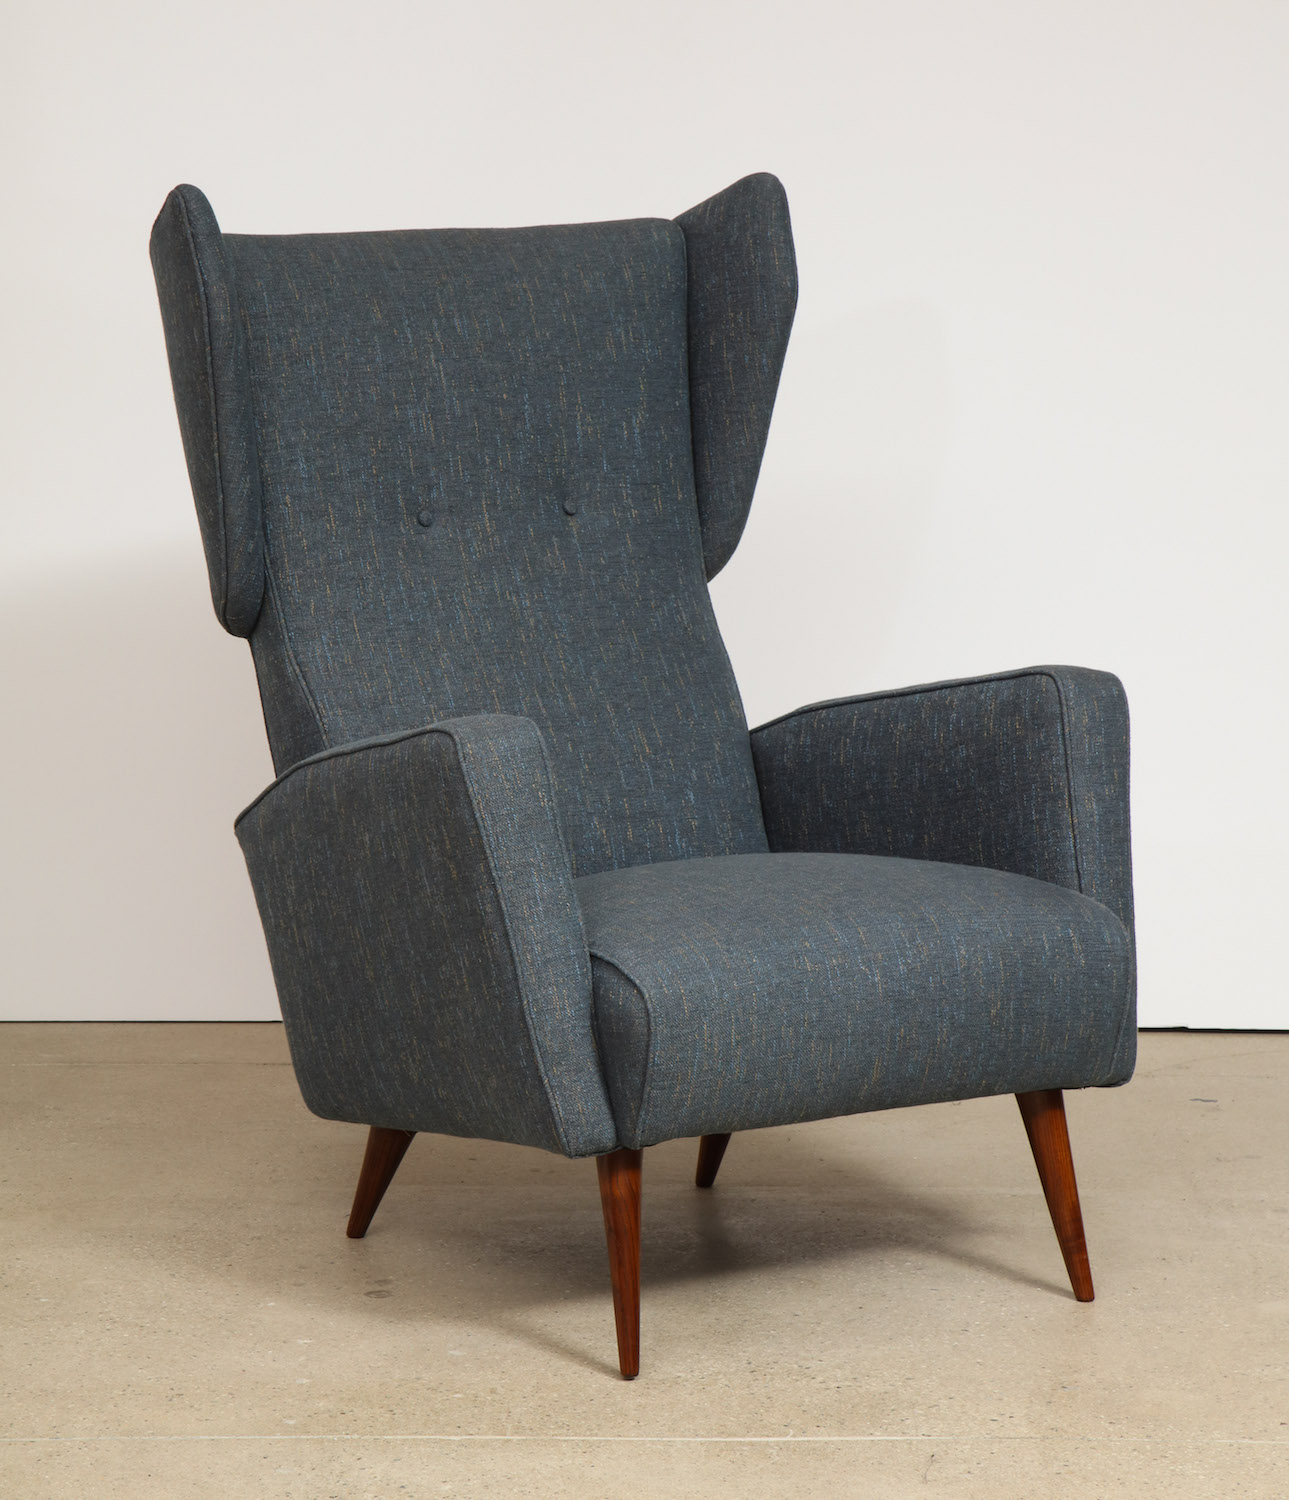 Ponti Dassi Wing Chairs 10.jpg